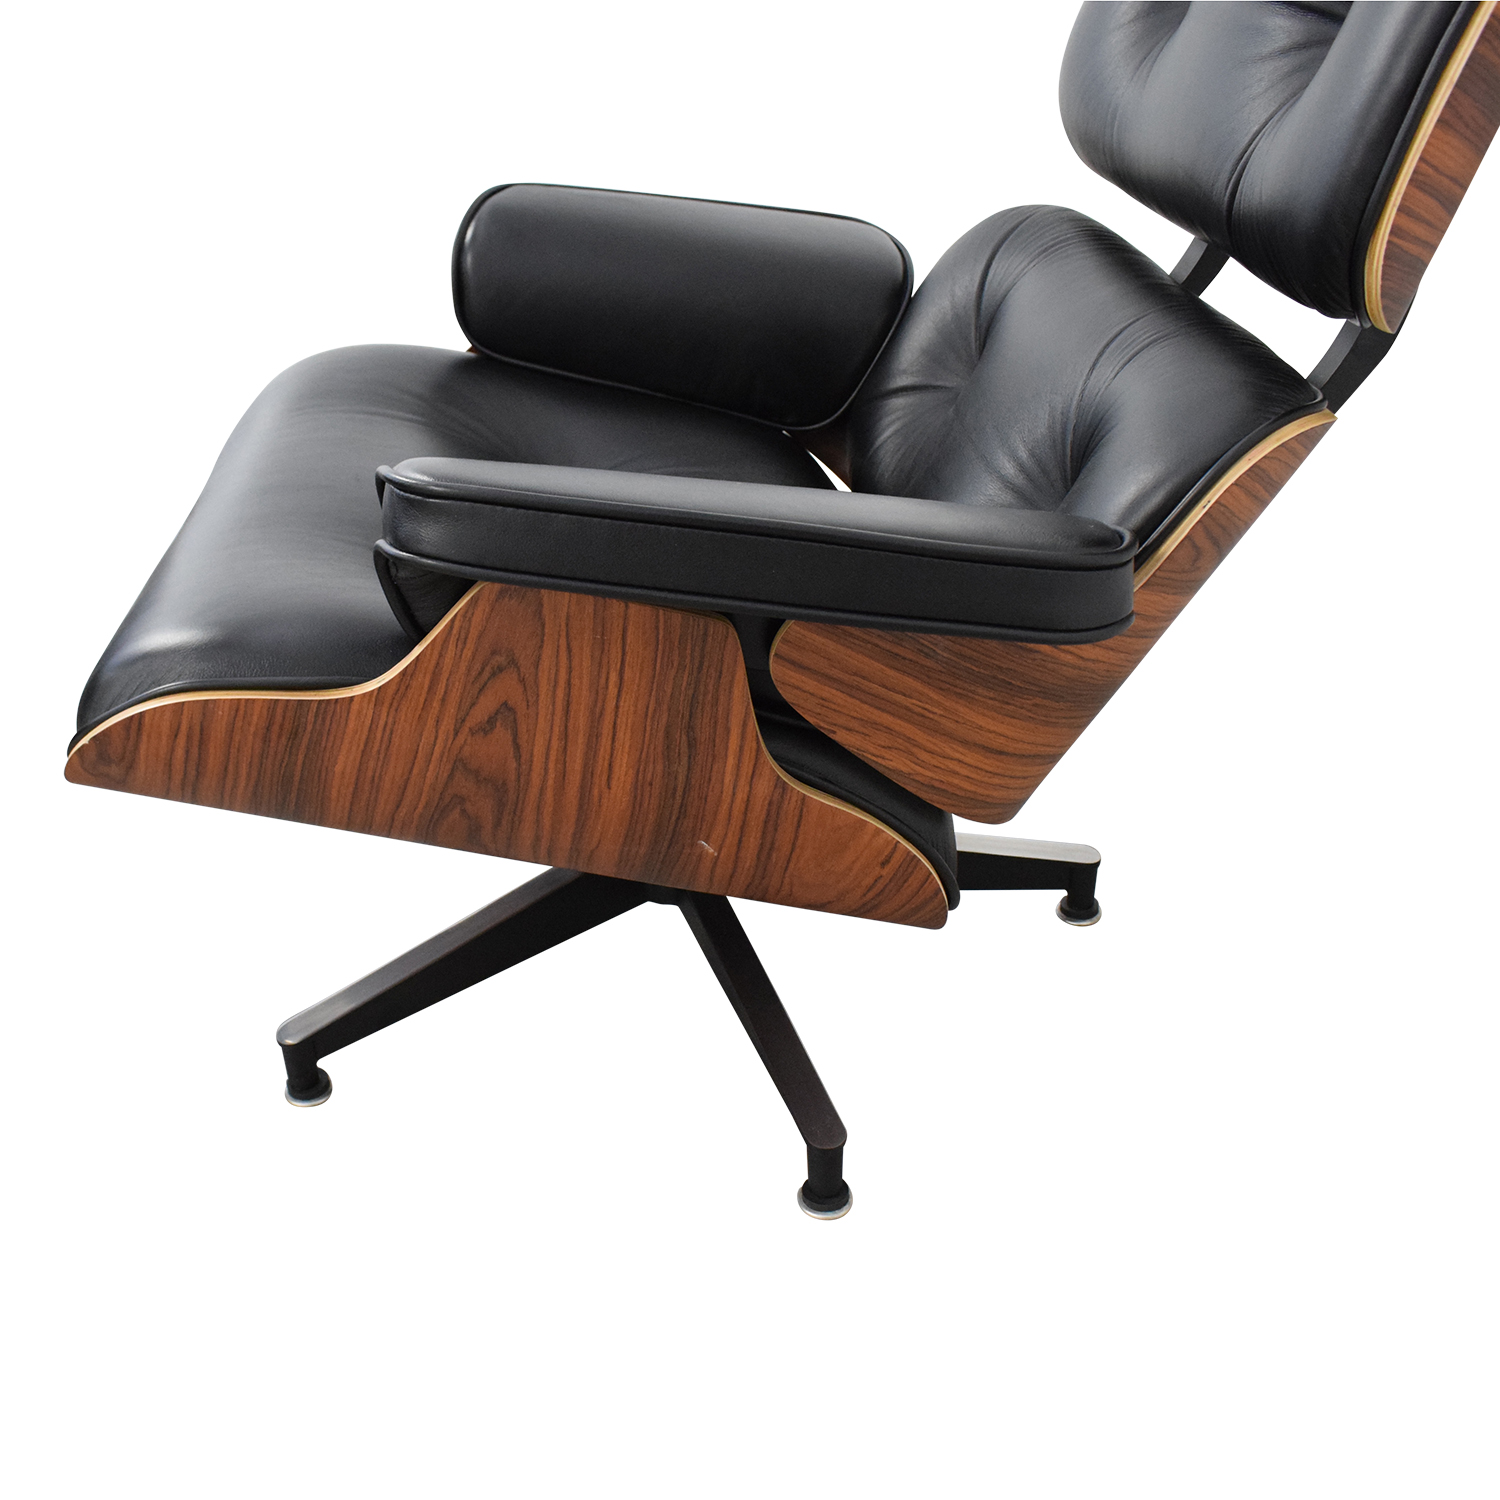 Manhattan Home Design Manhattan Home Design Eames-Style Classic Lounge Chair and Ottoman nyc